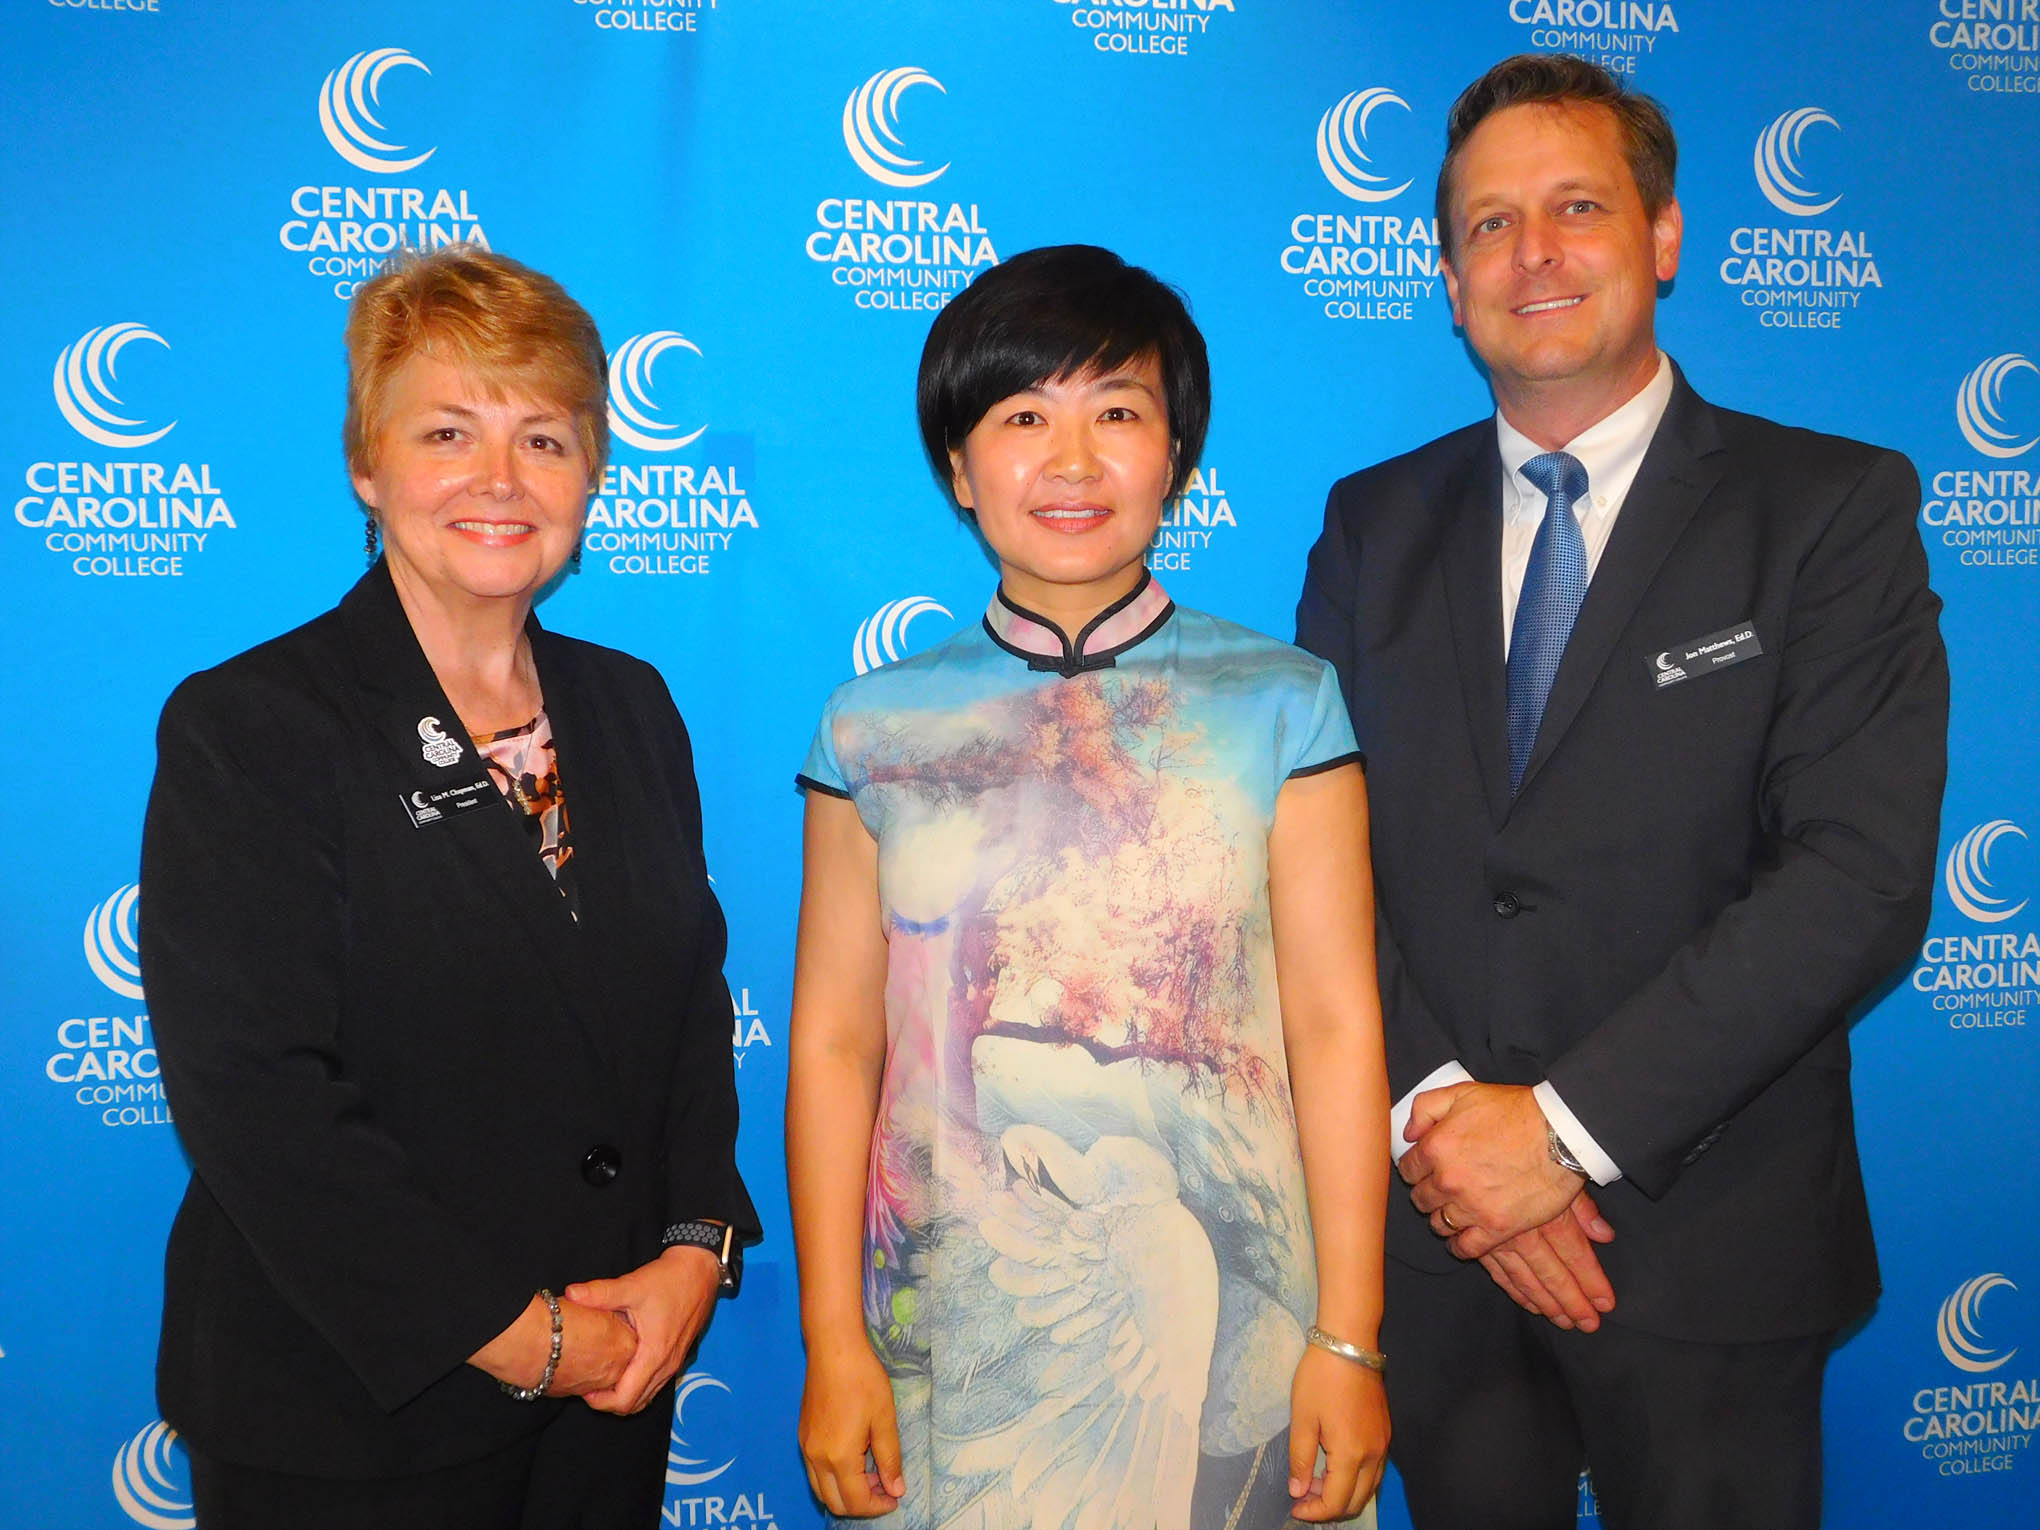 Click to enlarge,  Central Carolina Community College hosted a Ninth Anniversary and farewell honoring Yuehan Ma and the CCCC Confucius Classroom. Yuehan Ma is pictured in center with CCCC President Dr. Lisa M. Chapman at left and CCCC Harnett Provost Dr. Jon Matthews at right.